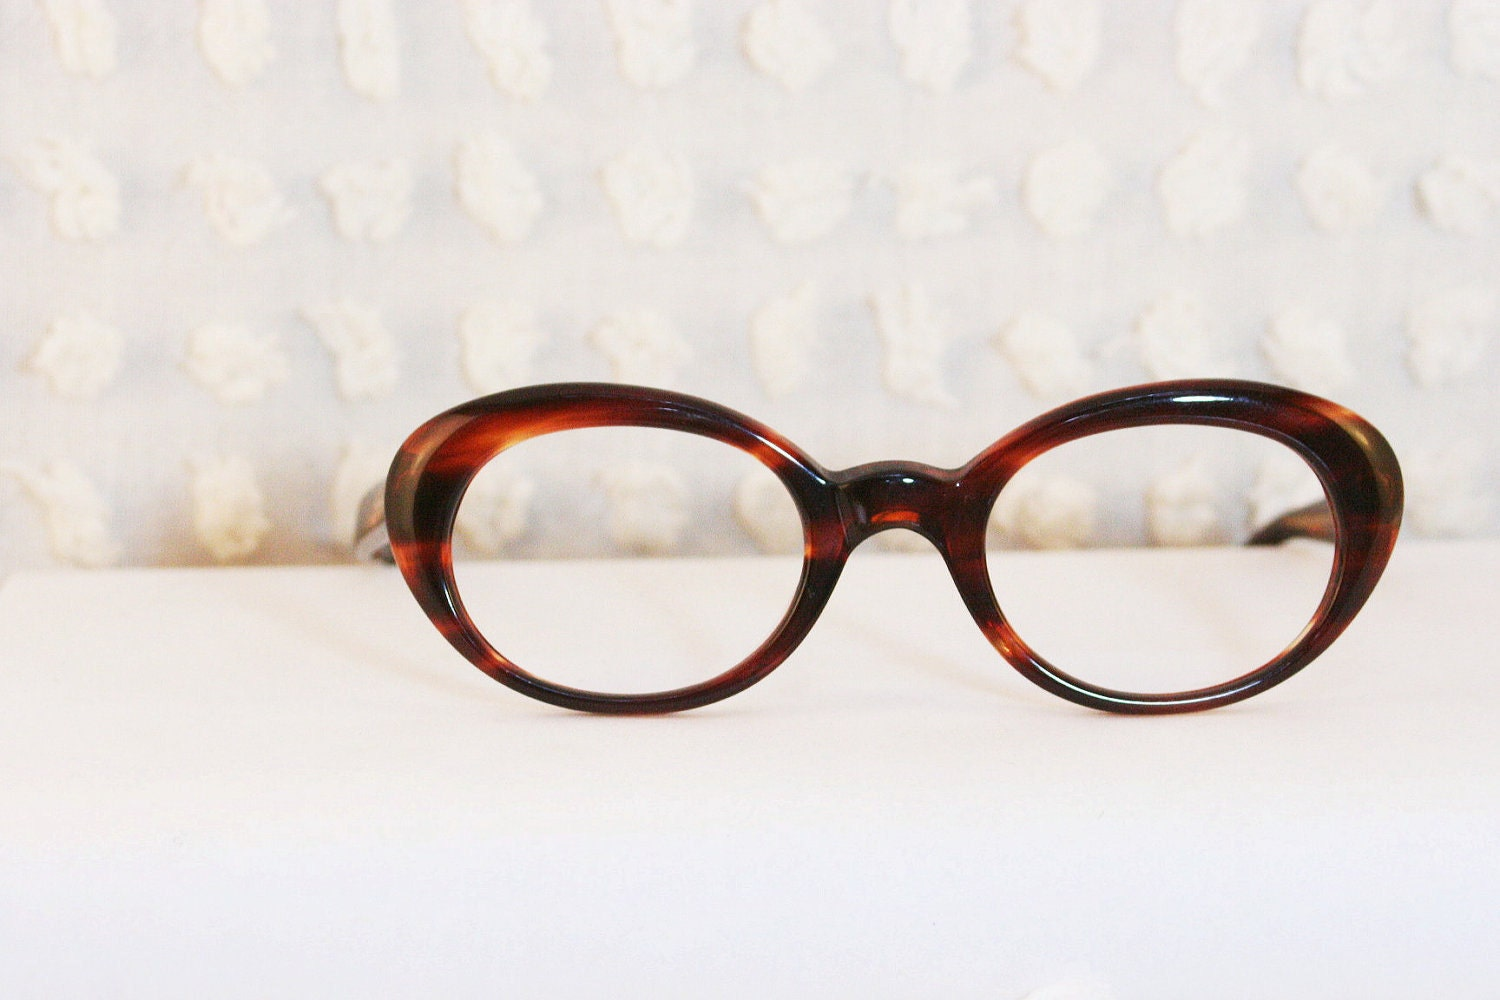 Eyeglass Frames Oval : Sibylle 1960s Eyeglasses Oval Cat Eye Mod by DIAeyewear ...